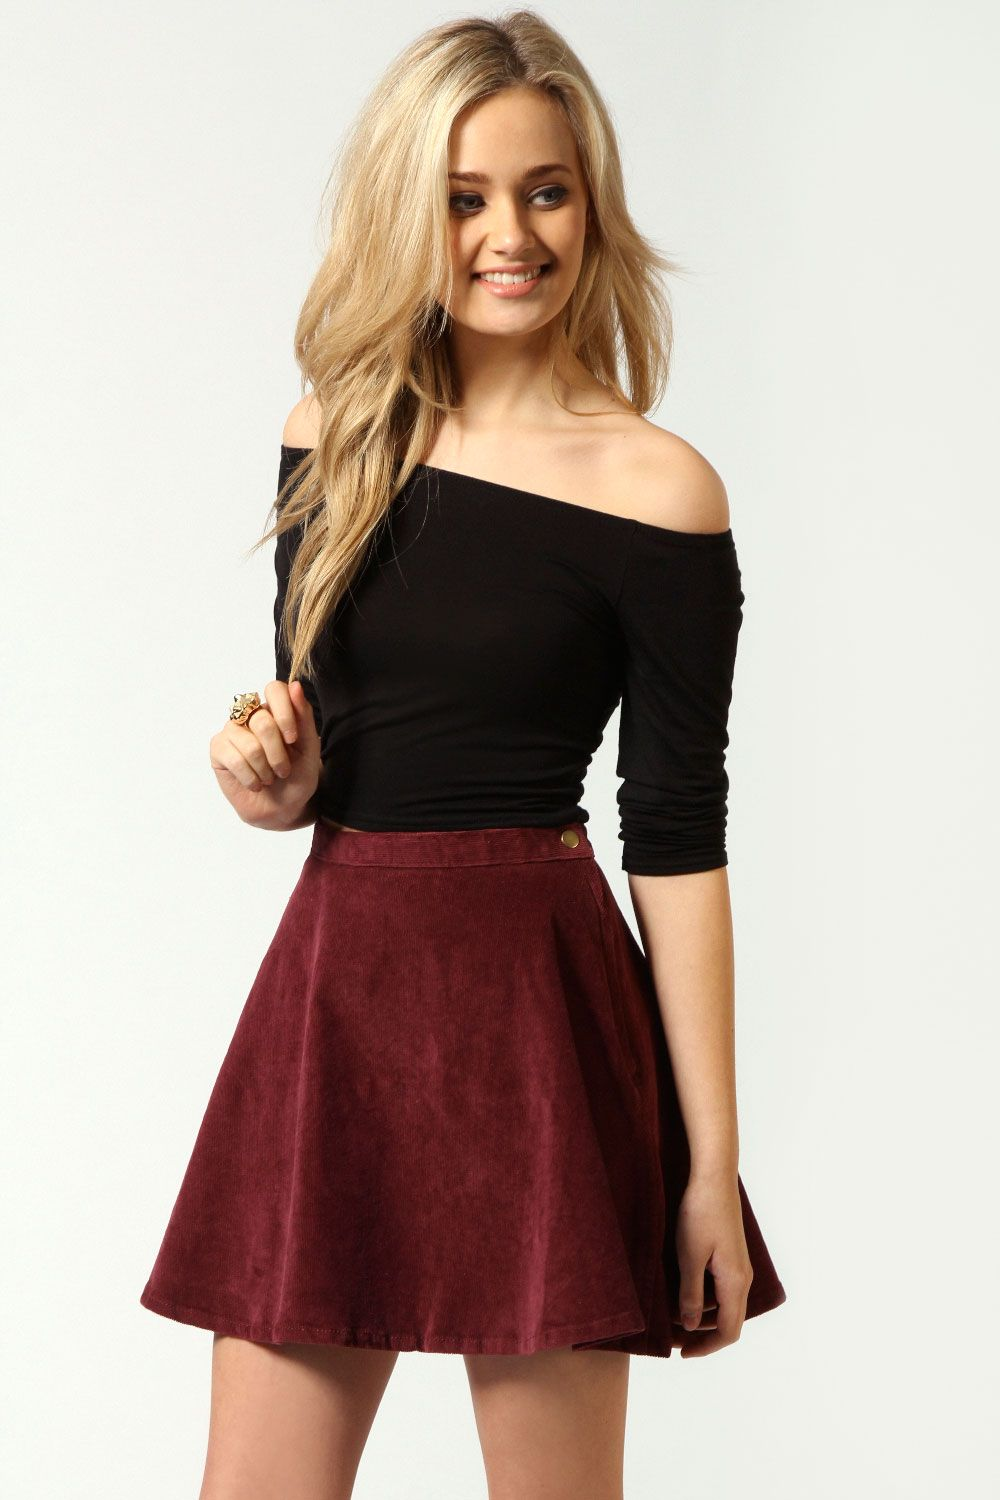 eed6182ae5 Cindy Cord Skater Skirt in wine (also black) | Outfit Ideas in 2019 ...